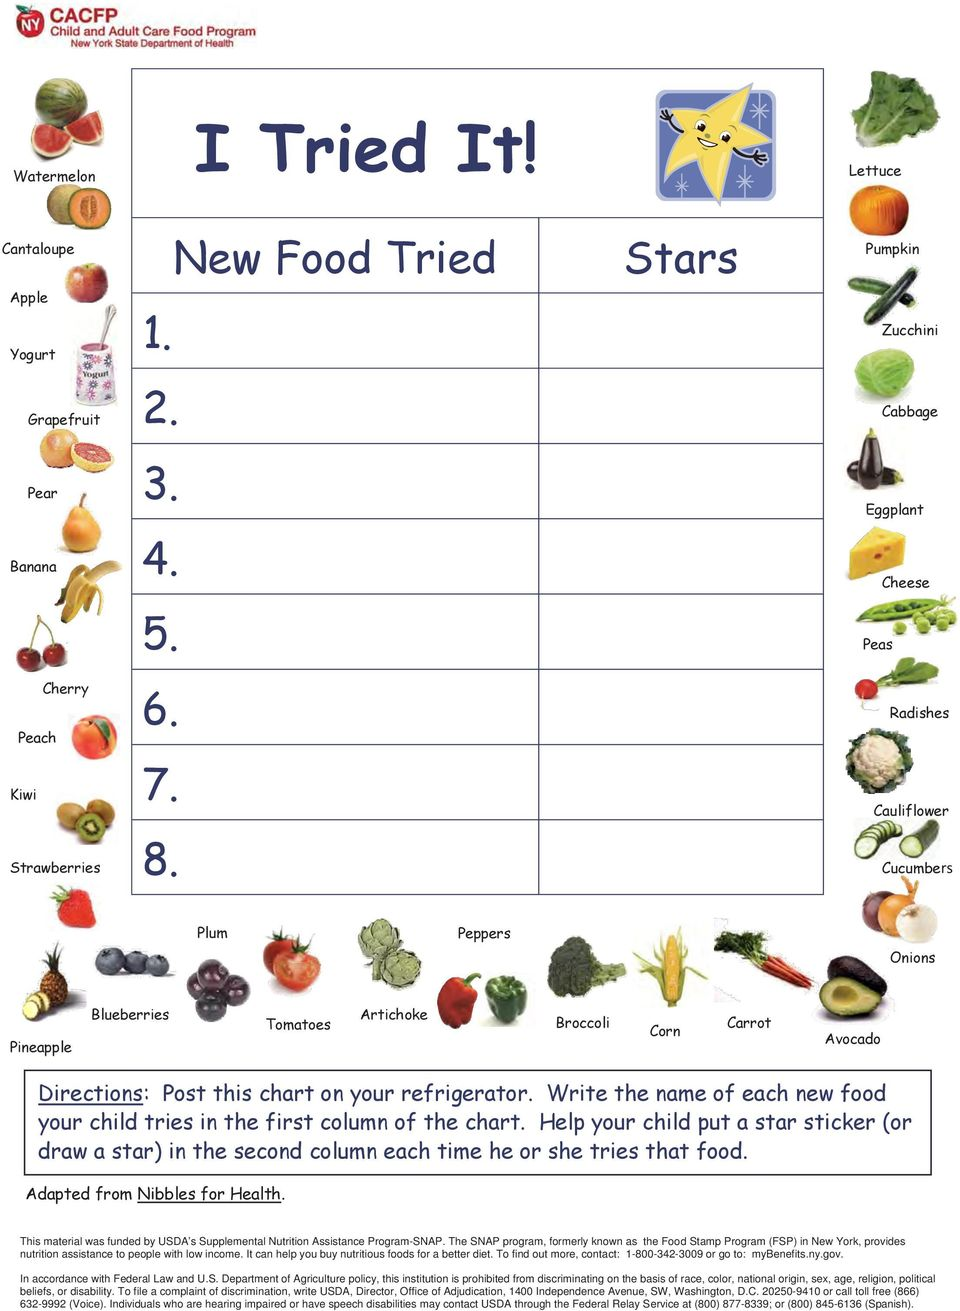 Write the name of each new food your child tries in the first column of the chart. Help your child put a star sticker (or draw a star) in the second column each time he or she tries that food.